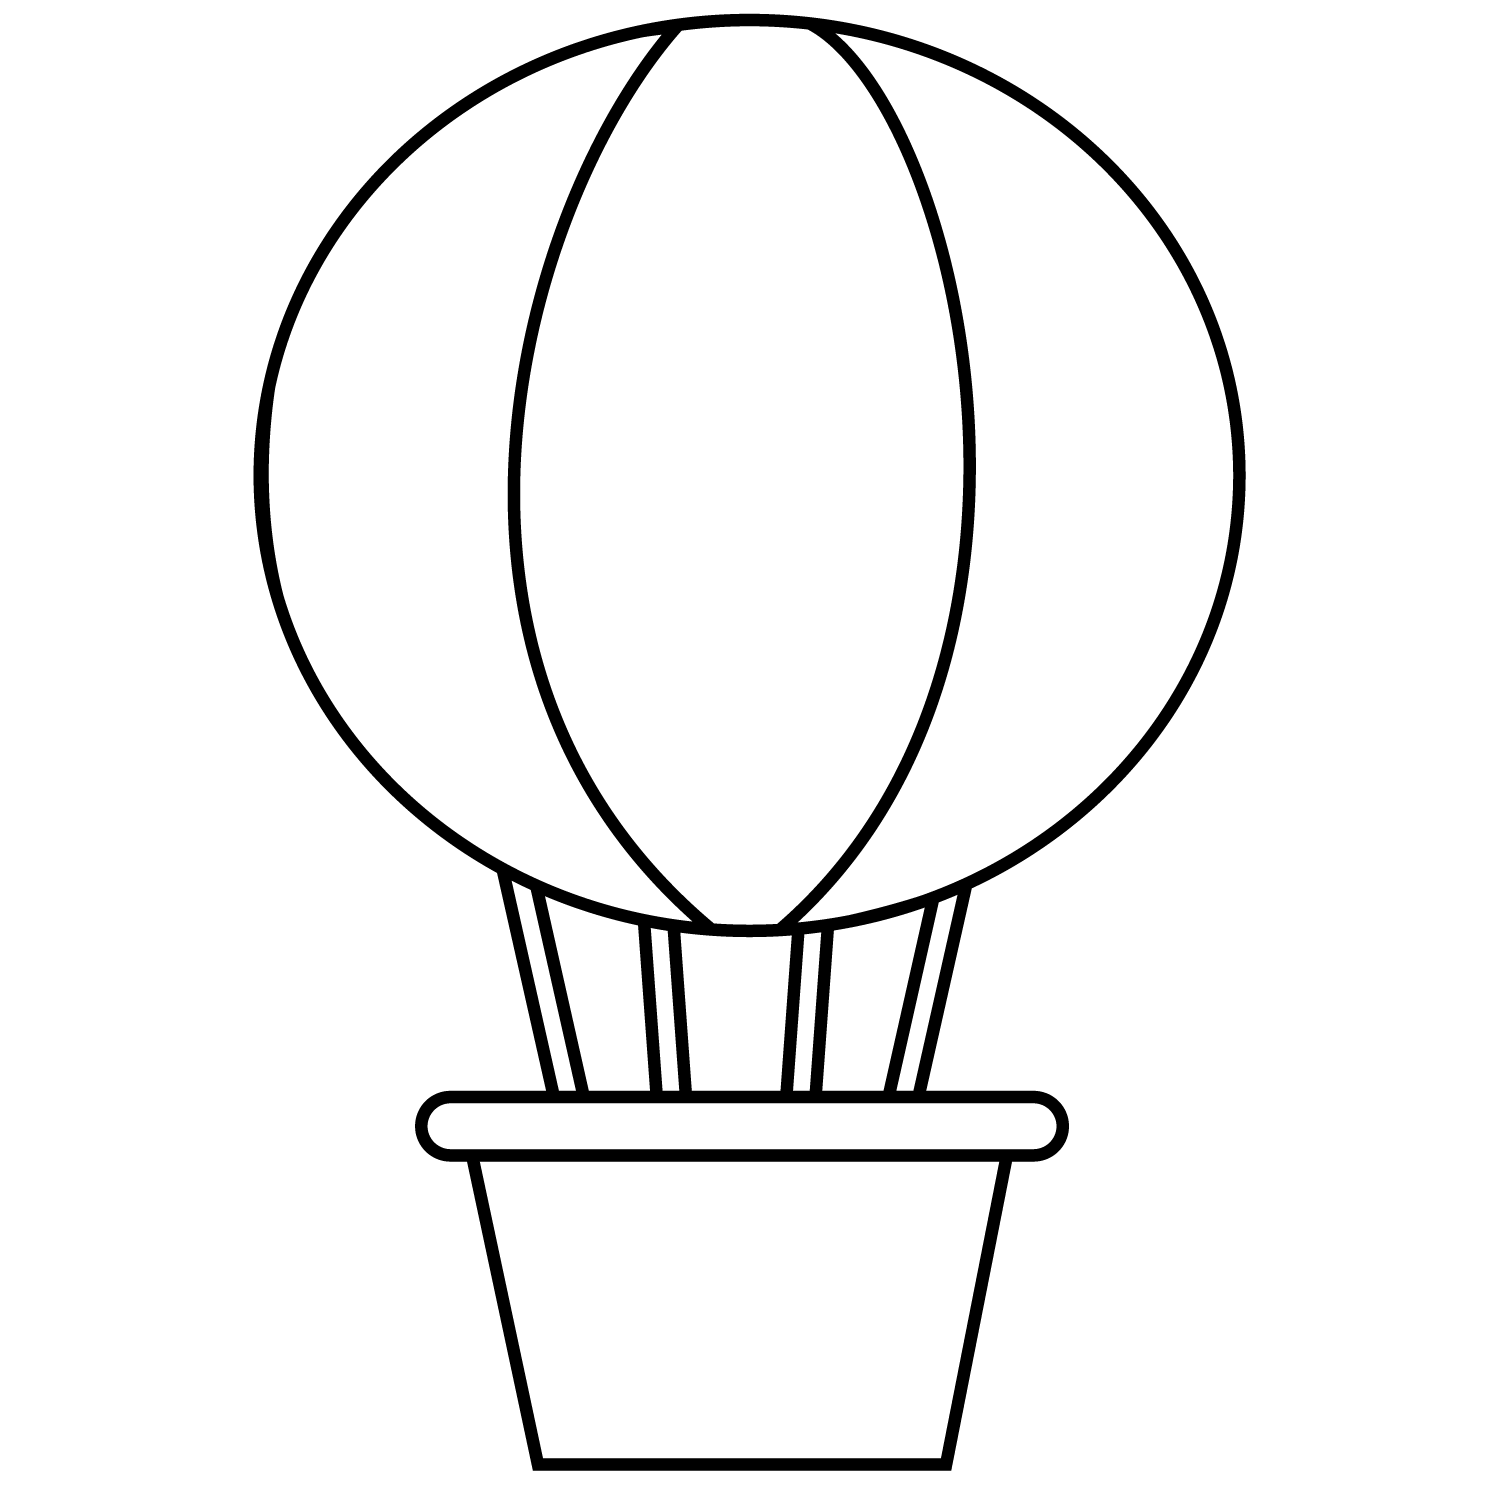 Flip drawing balloon. Meios de transporte png